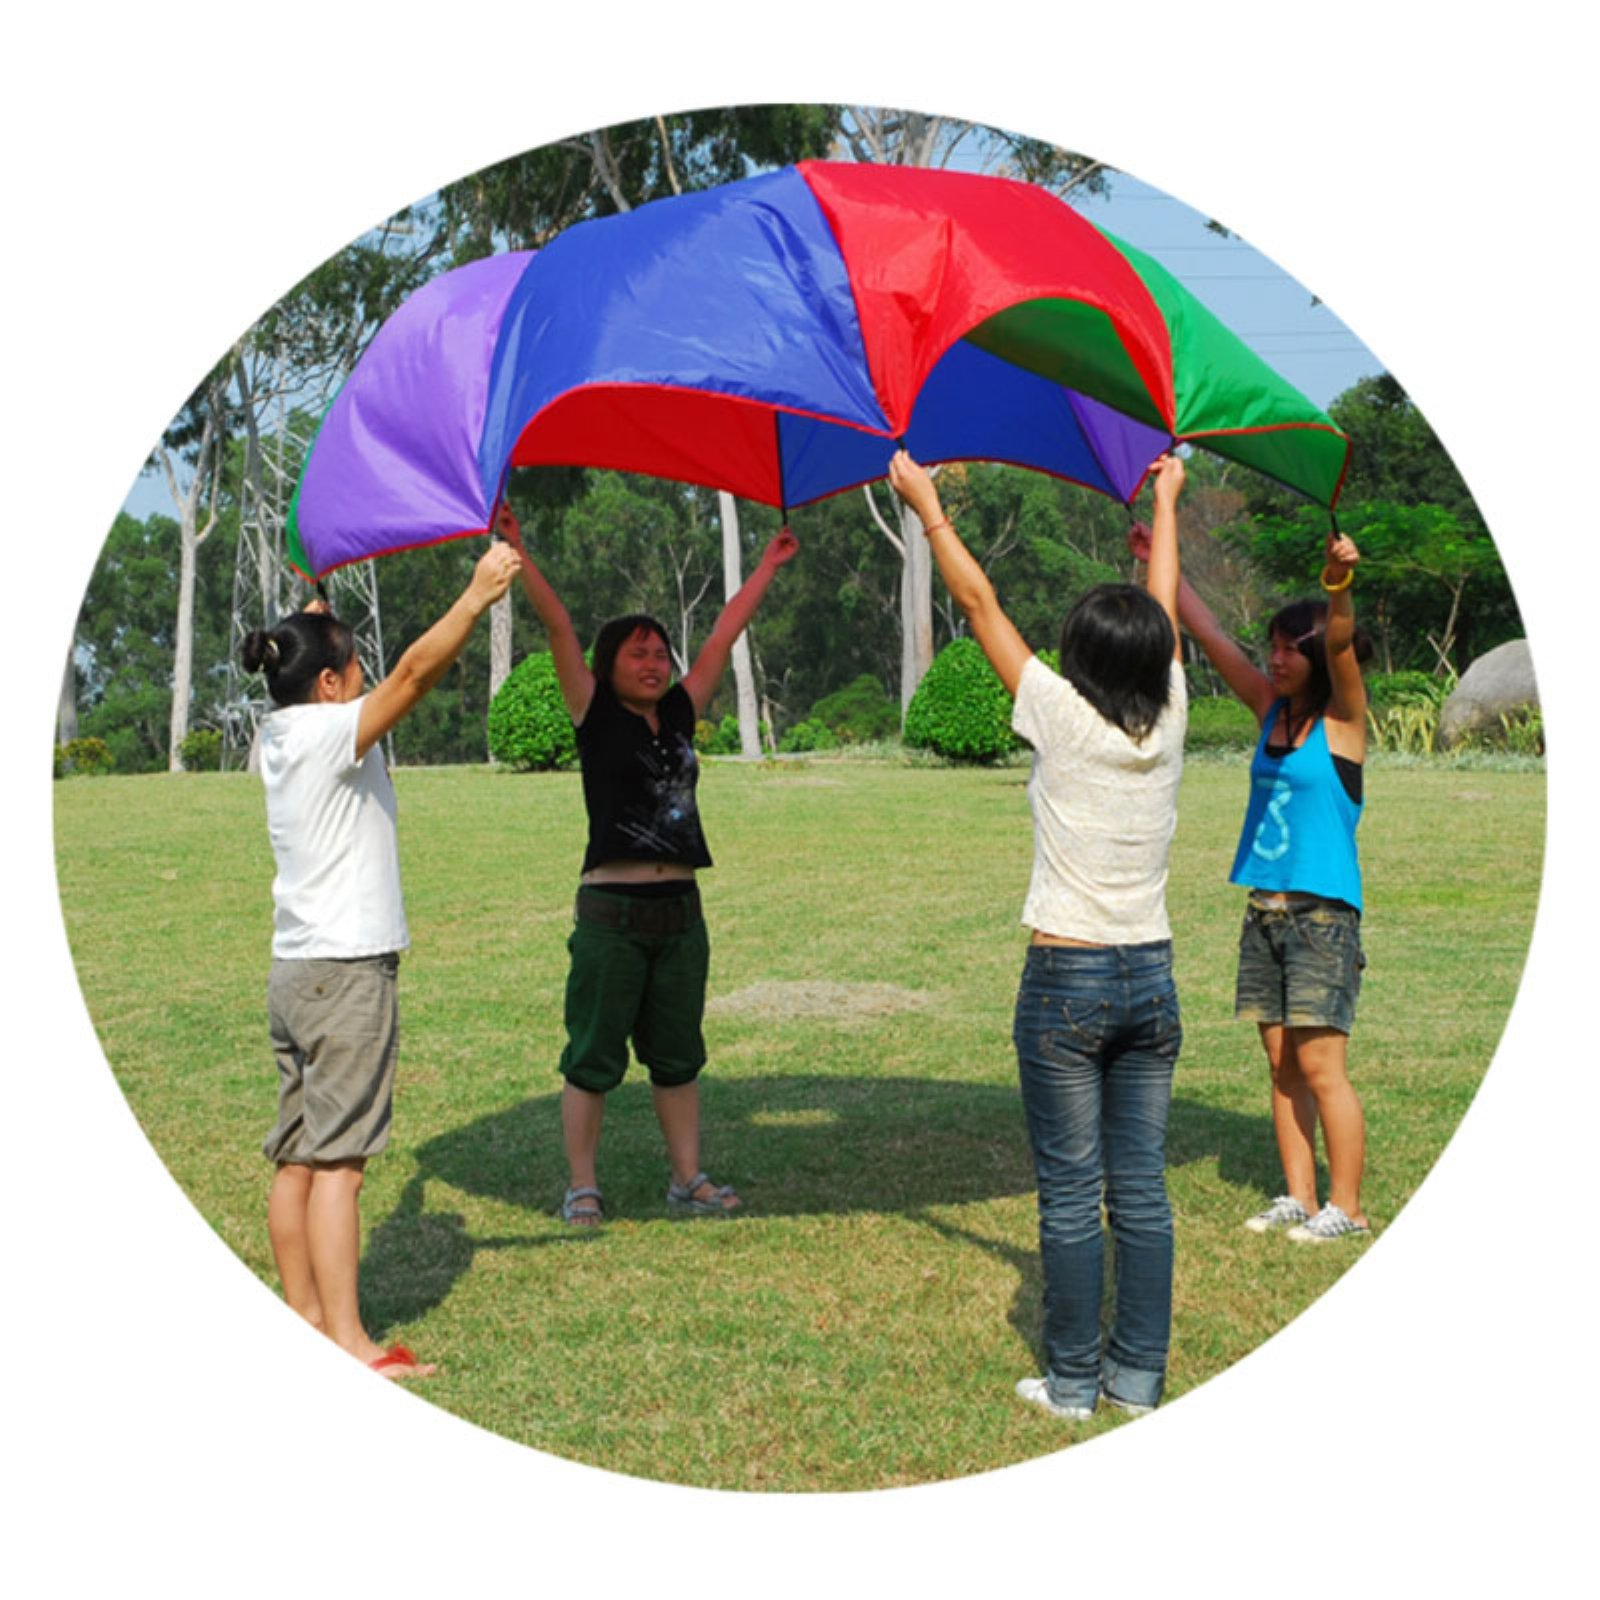 GigaTent 10' Multi Use Parachute Play Tent